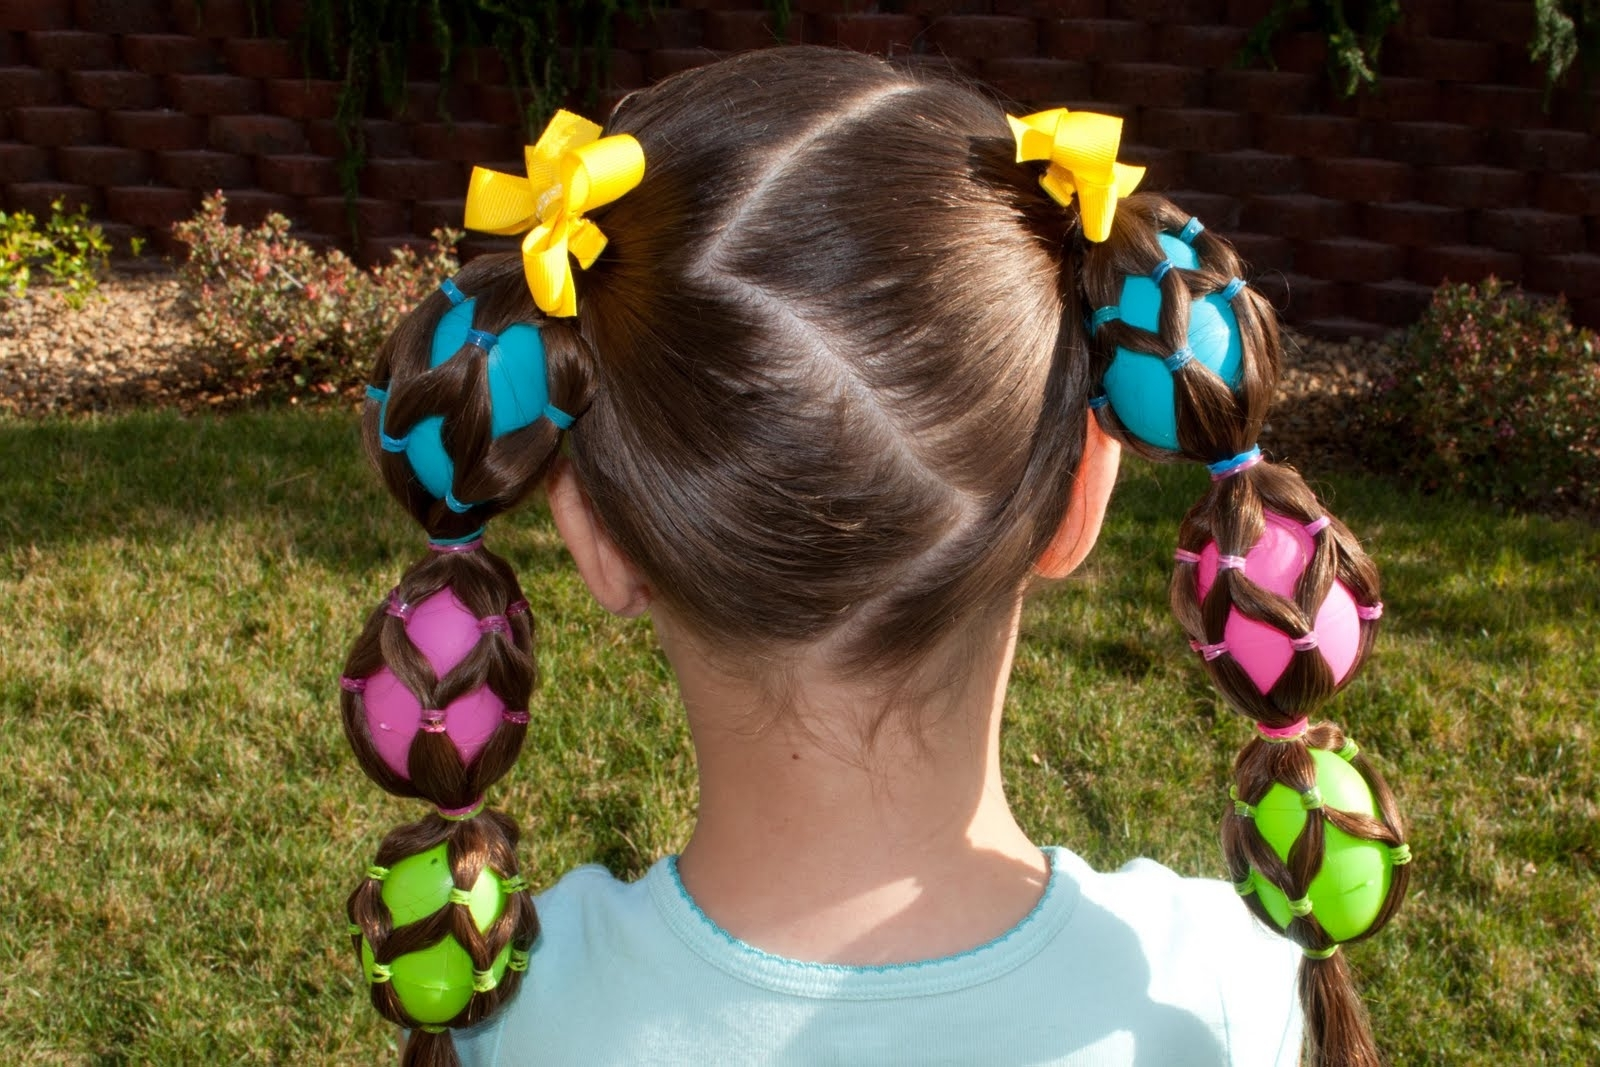 Princess Piggies: A Little Something Eggstra Within Preferred Easter Braid Hairstyles (View 11 of 15)